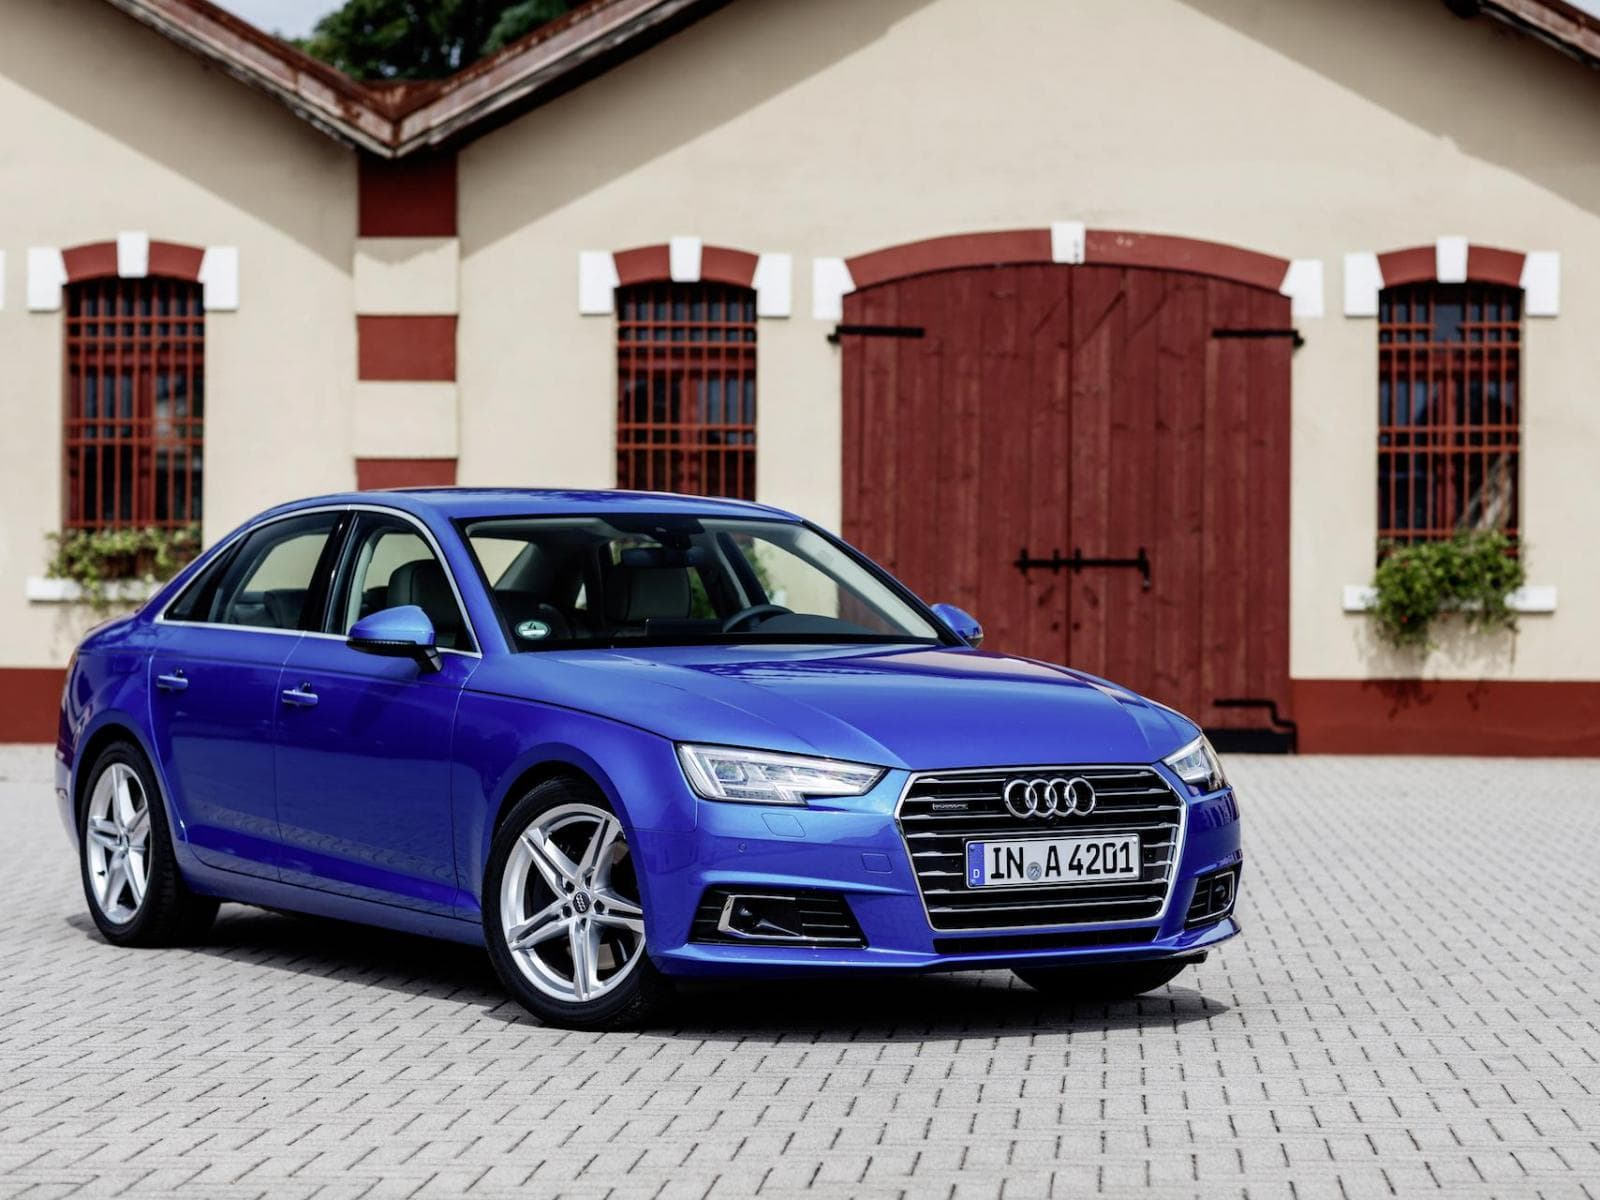 Audi A4 Facelift 2019 wallpapers, free download